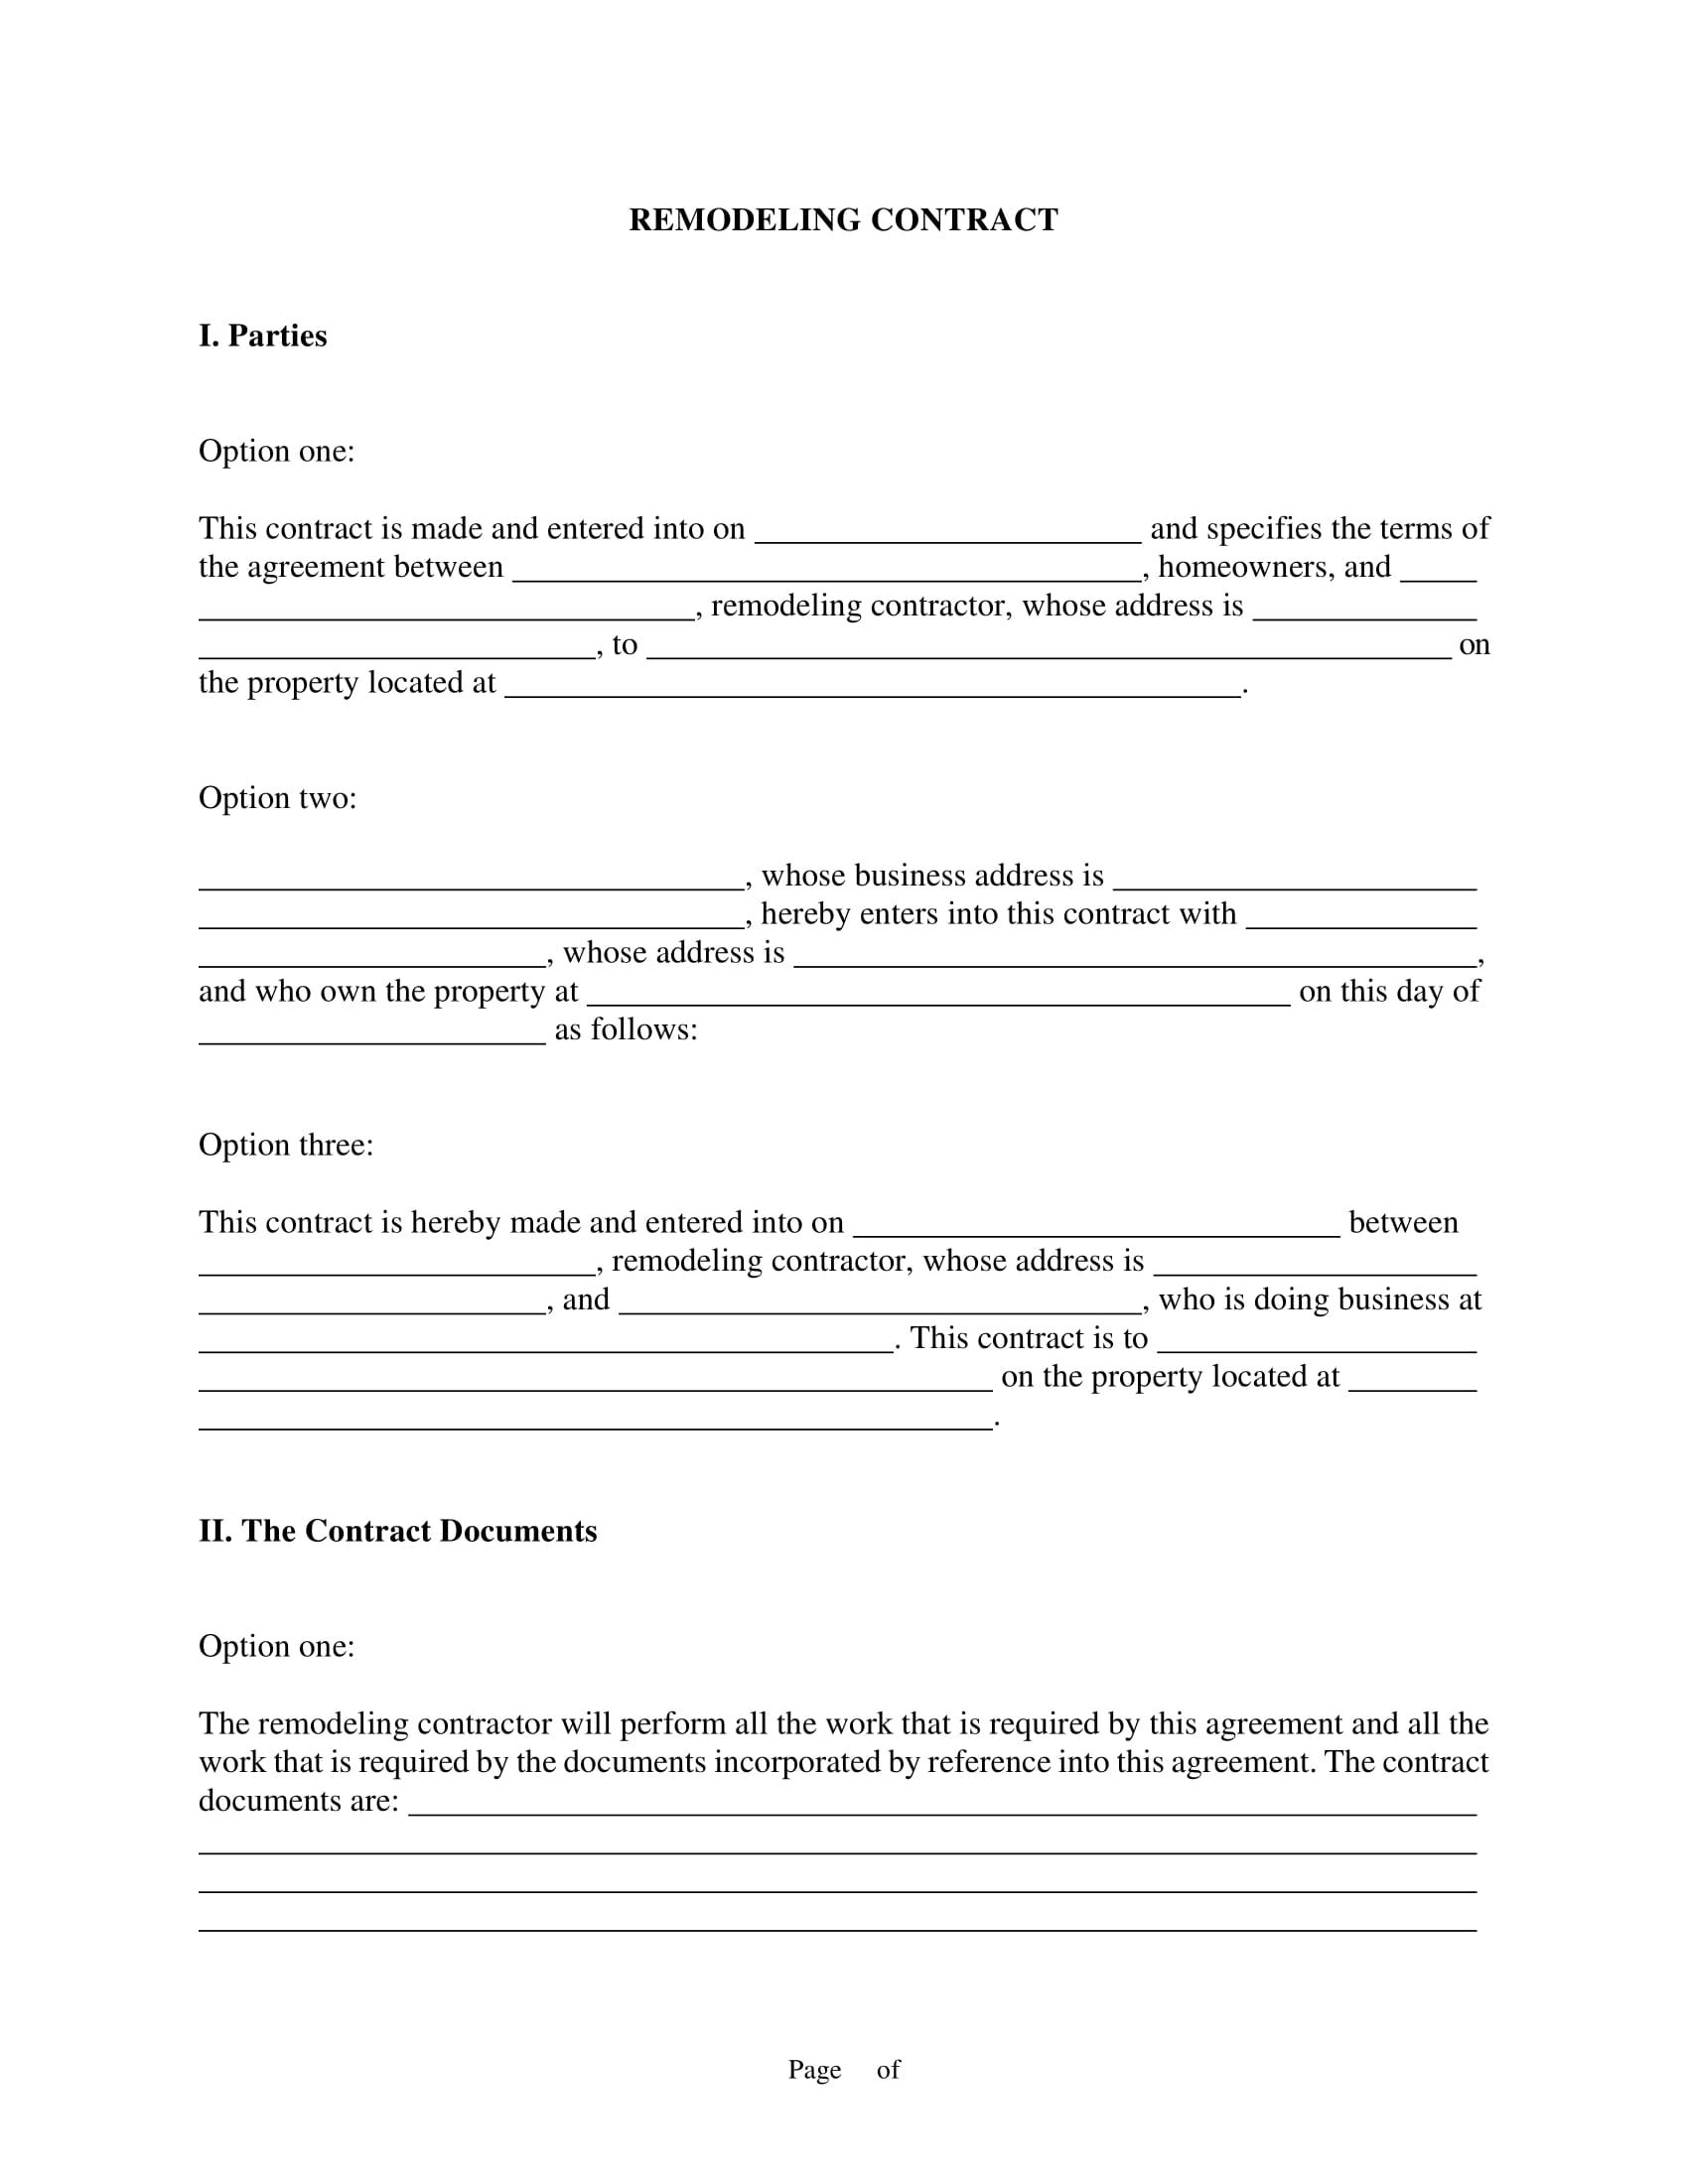 bathroom remodeling contract template example 1